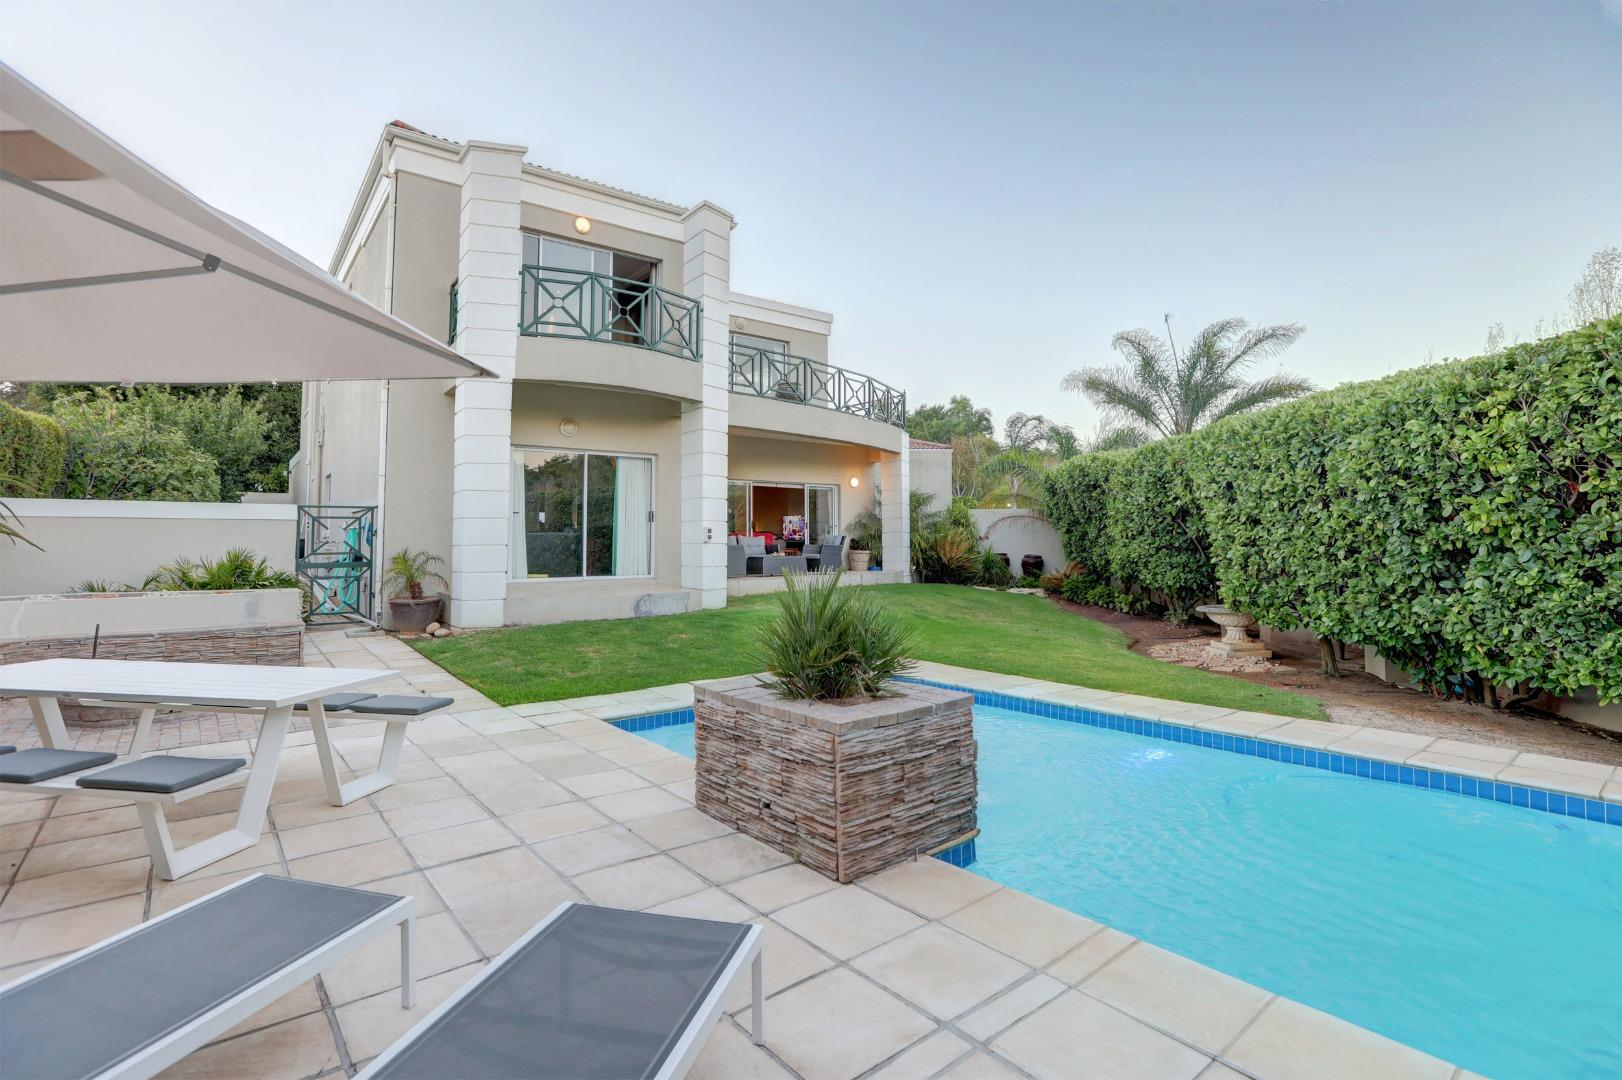 4 Bedroom  House for Sale in Durbanville - Western Cape